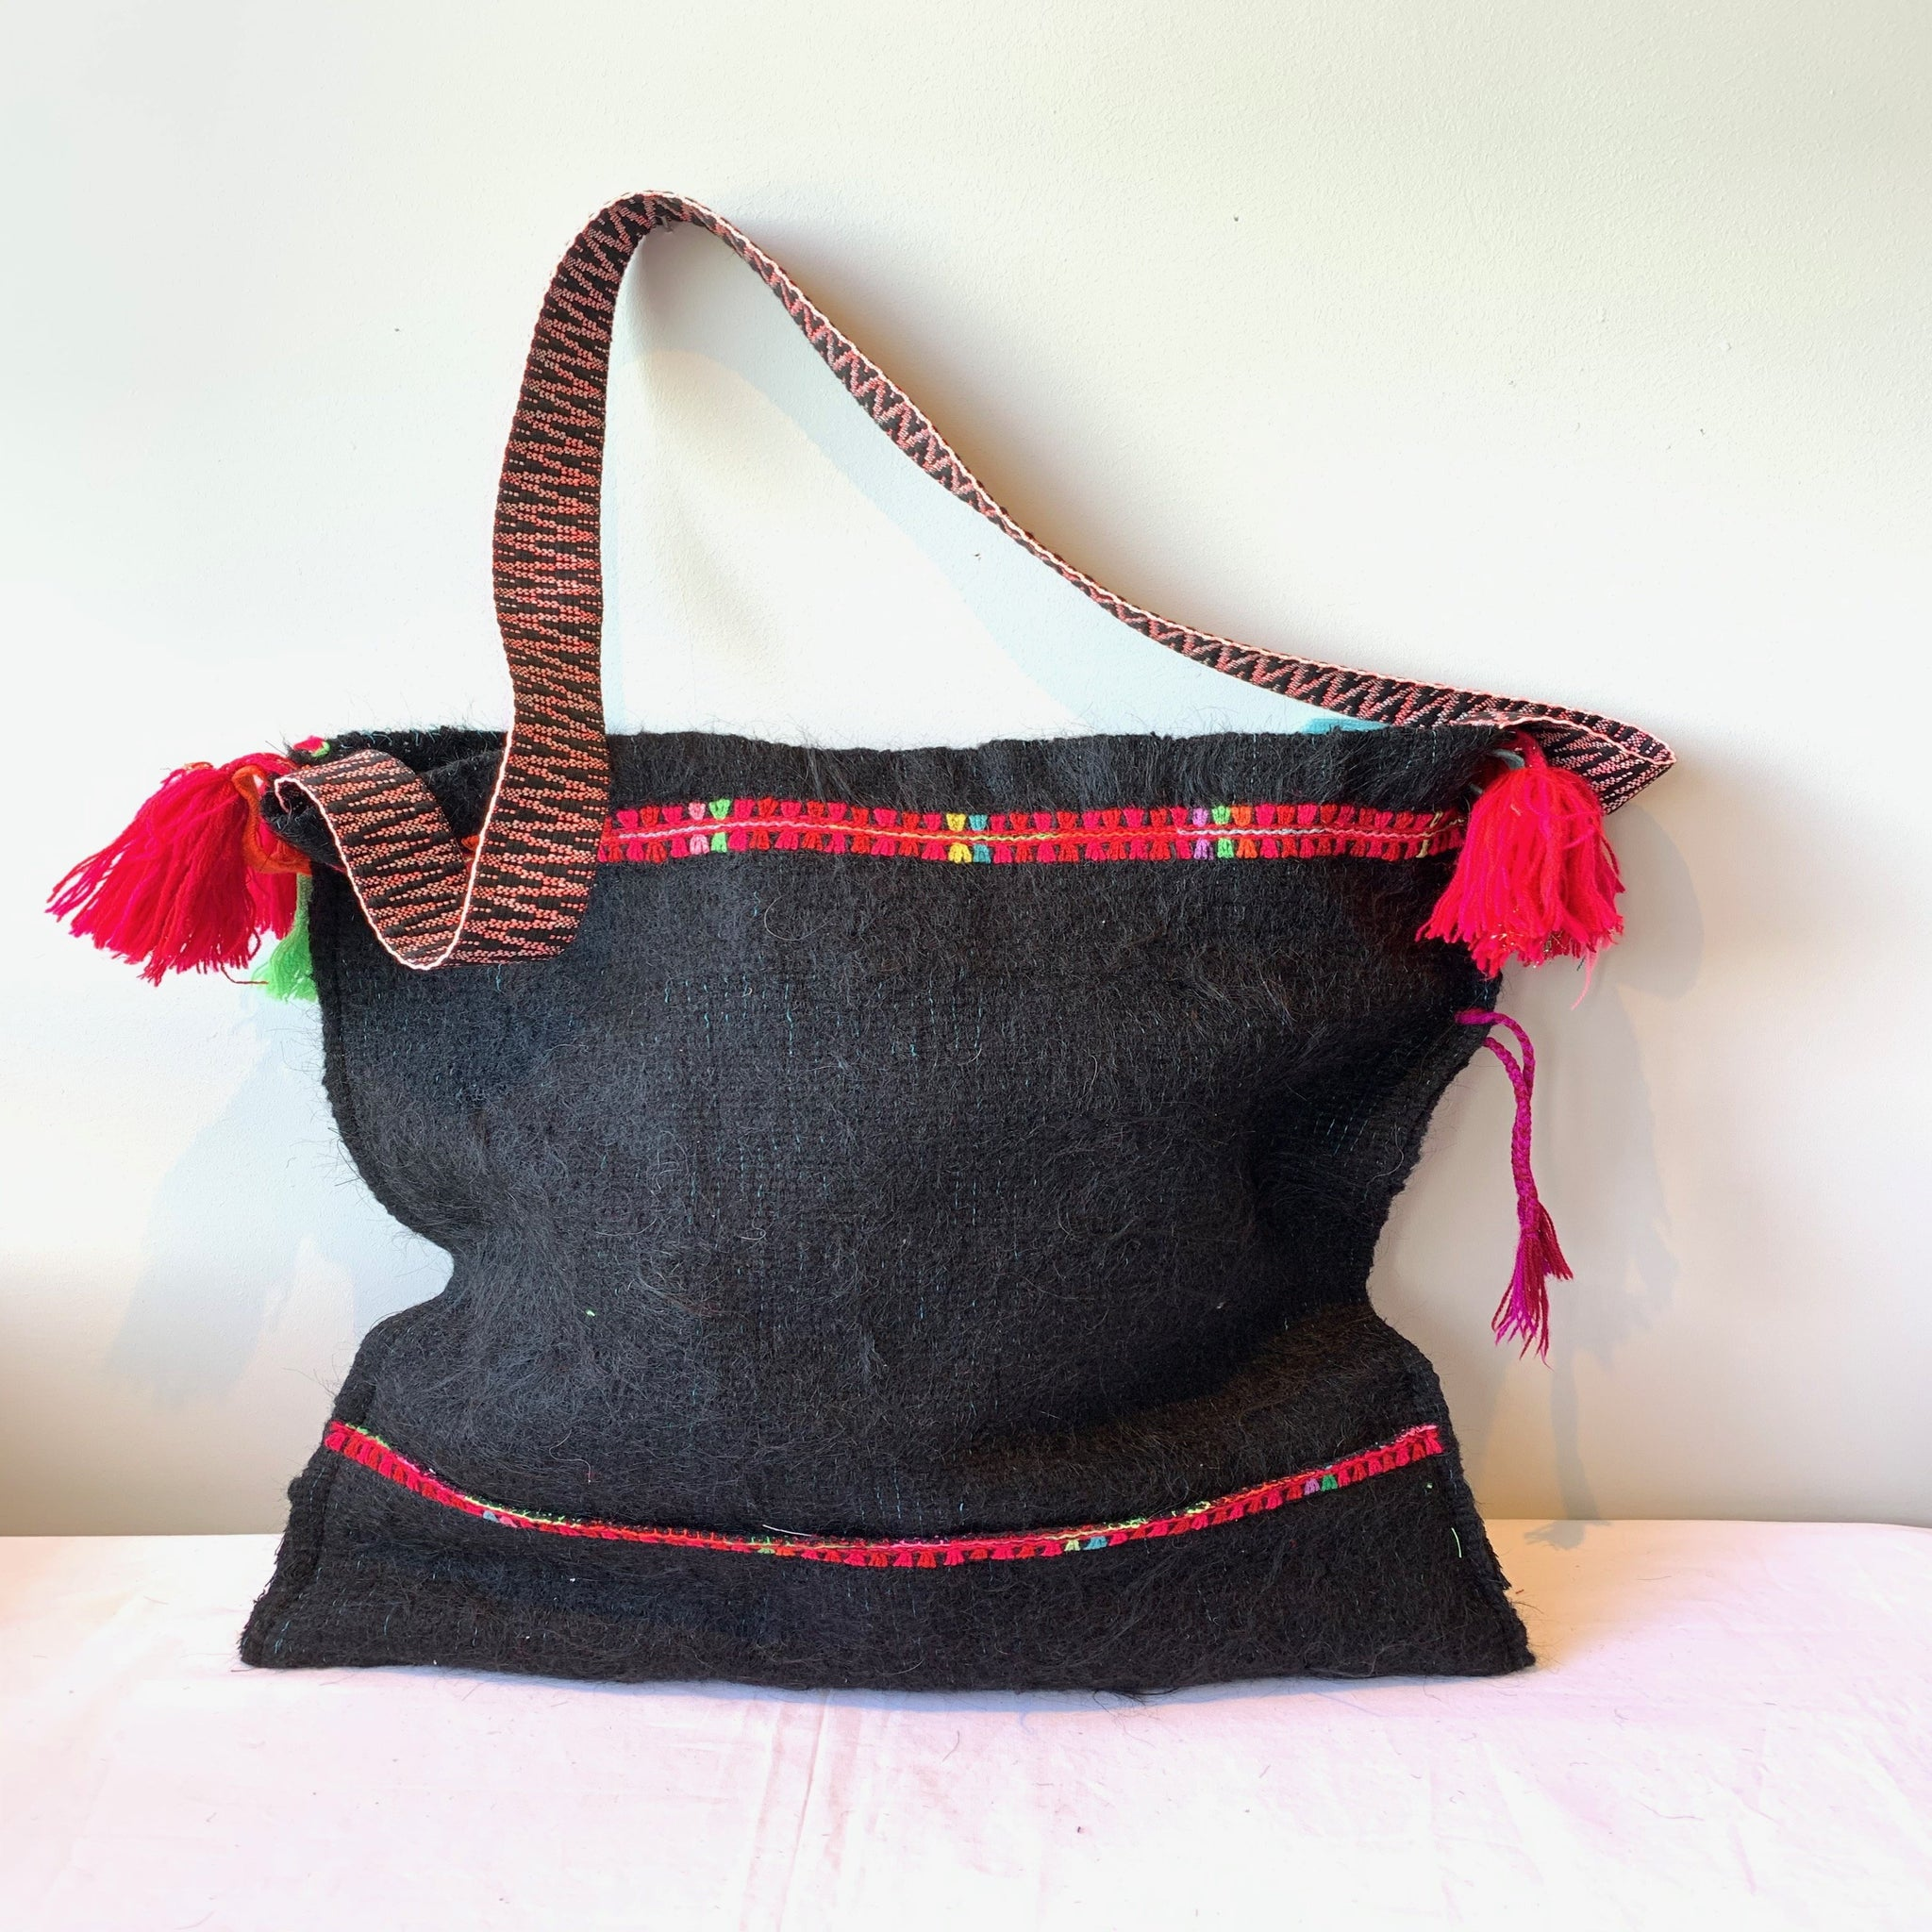 Exclusive hand made bag from Chamula in Chiapas, Mexico